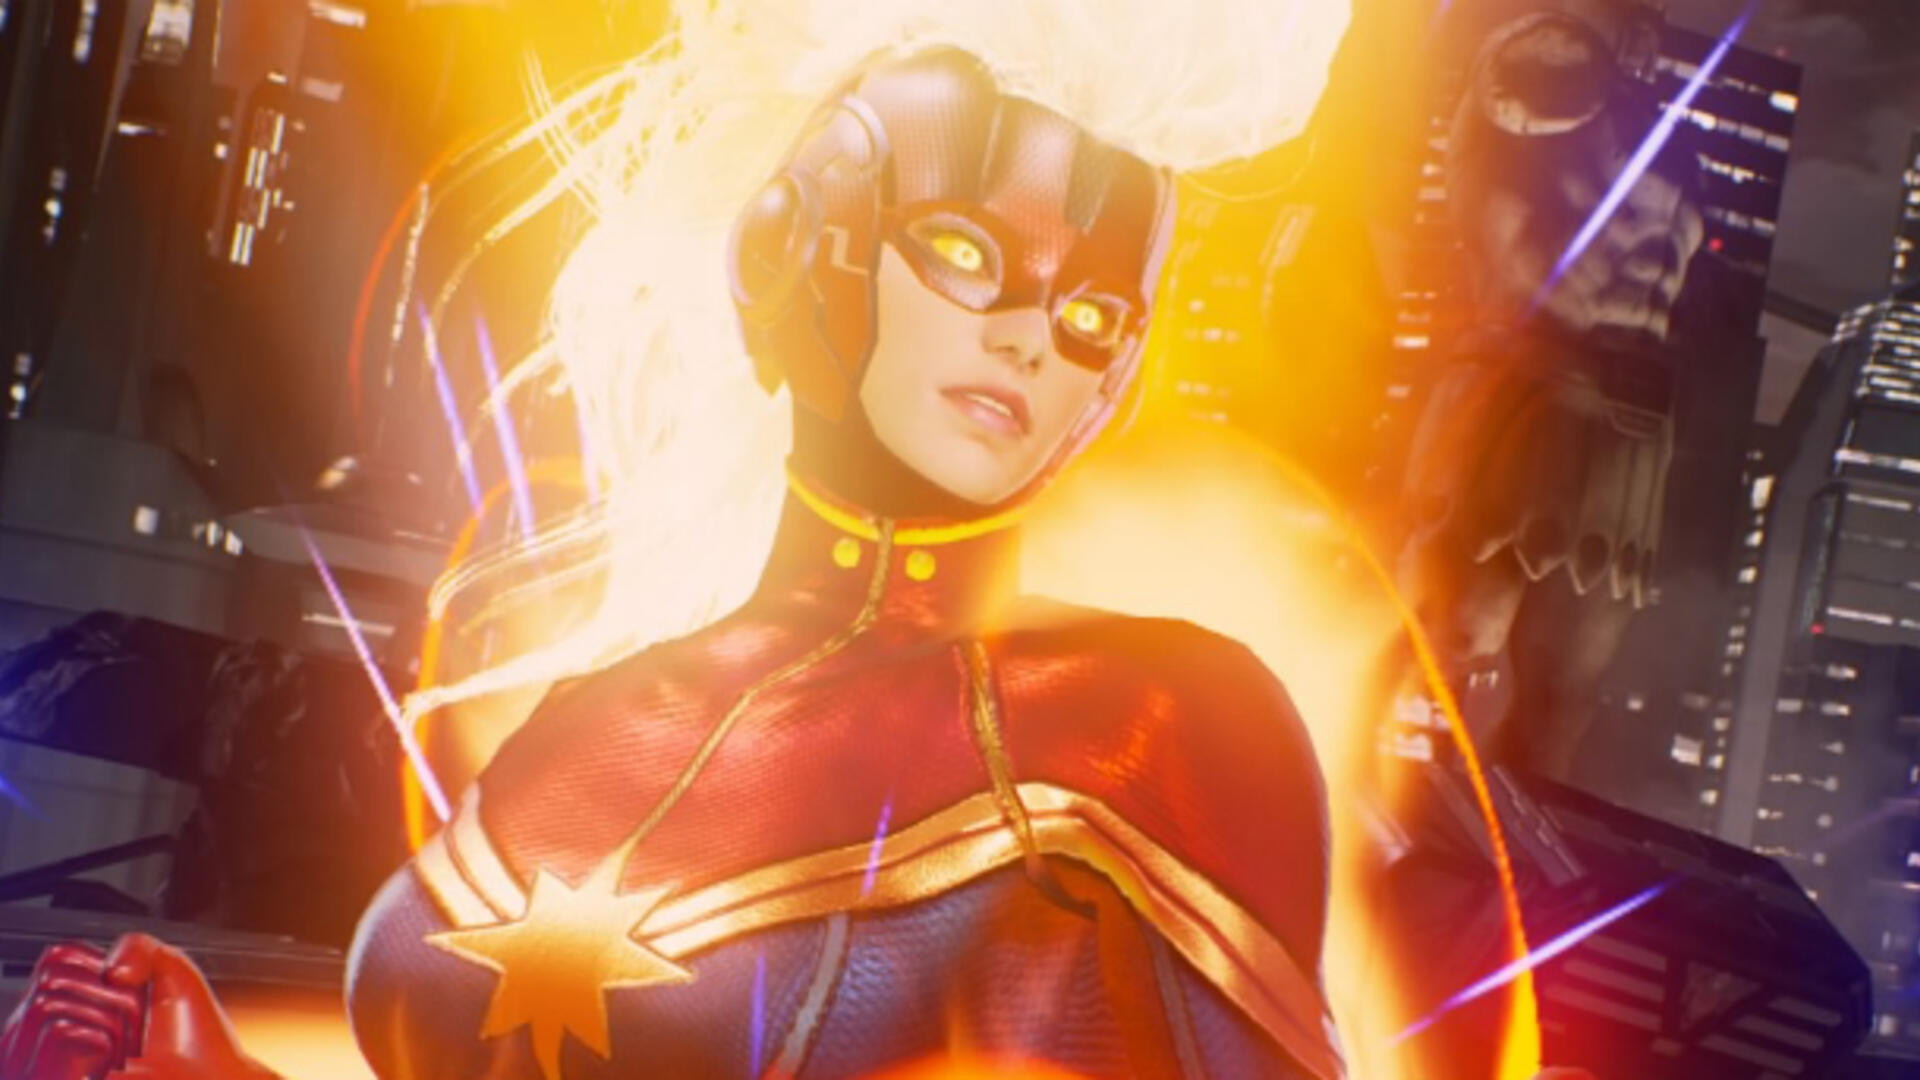 Marvel vs Capcom Infinite Review: A Finite Foundation For Something More